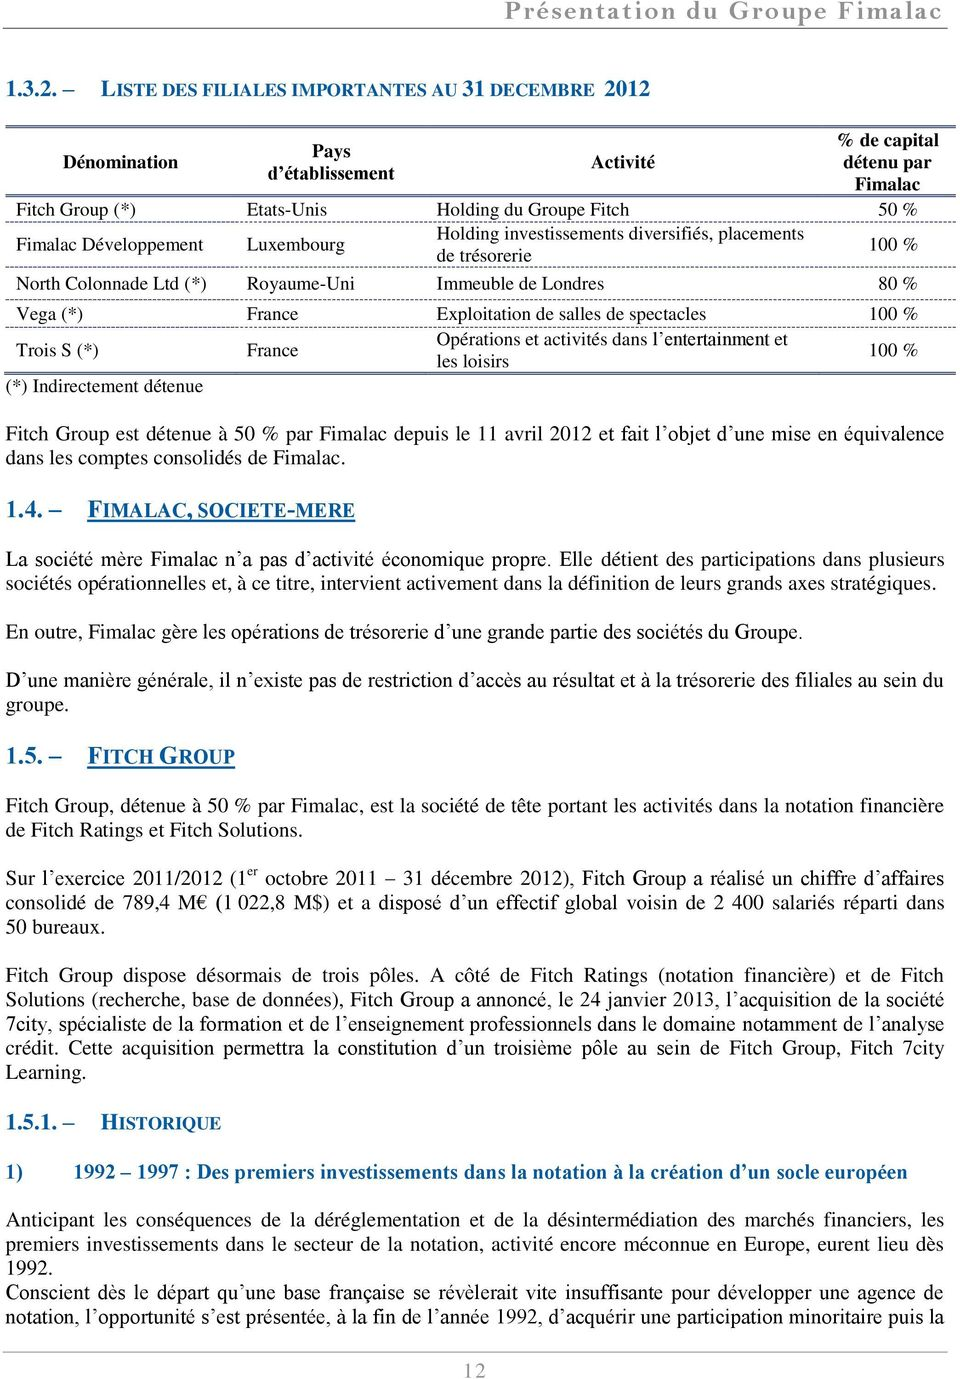 Développement Luxembourg Holding investissements diversifiés, placements de trésorerie 100 % North Colonnade Ltd (*) Royaume-Uni Immeuble de Londres 80 % Vega (*) France Exploitation de salles de